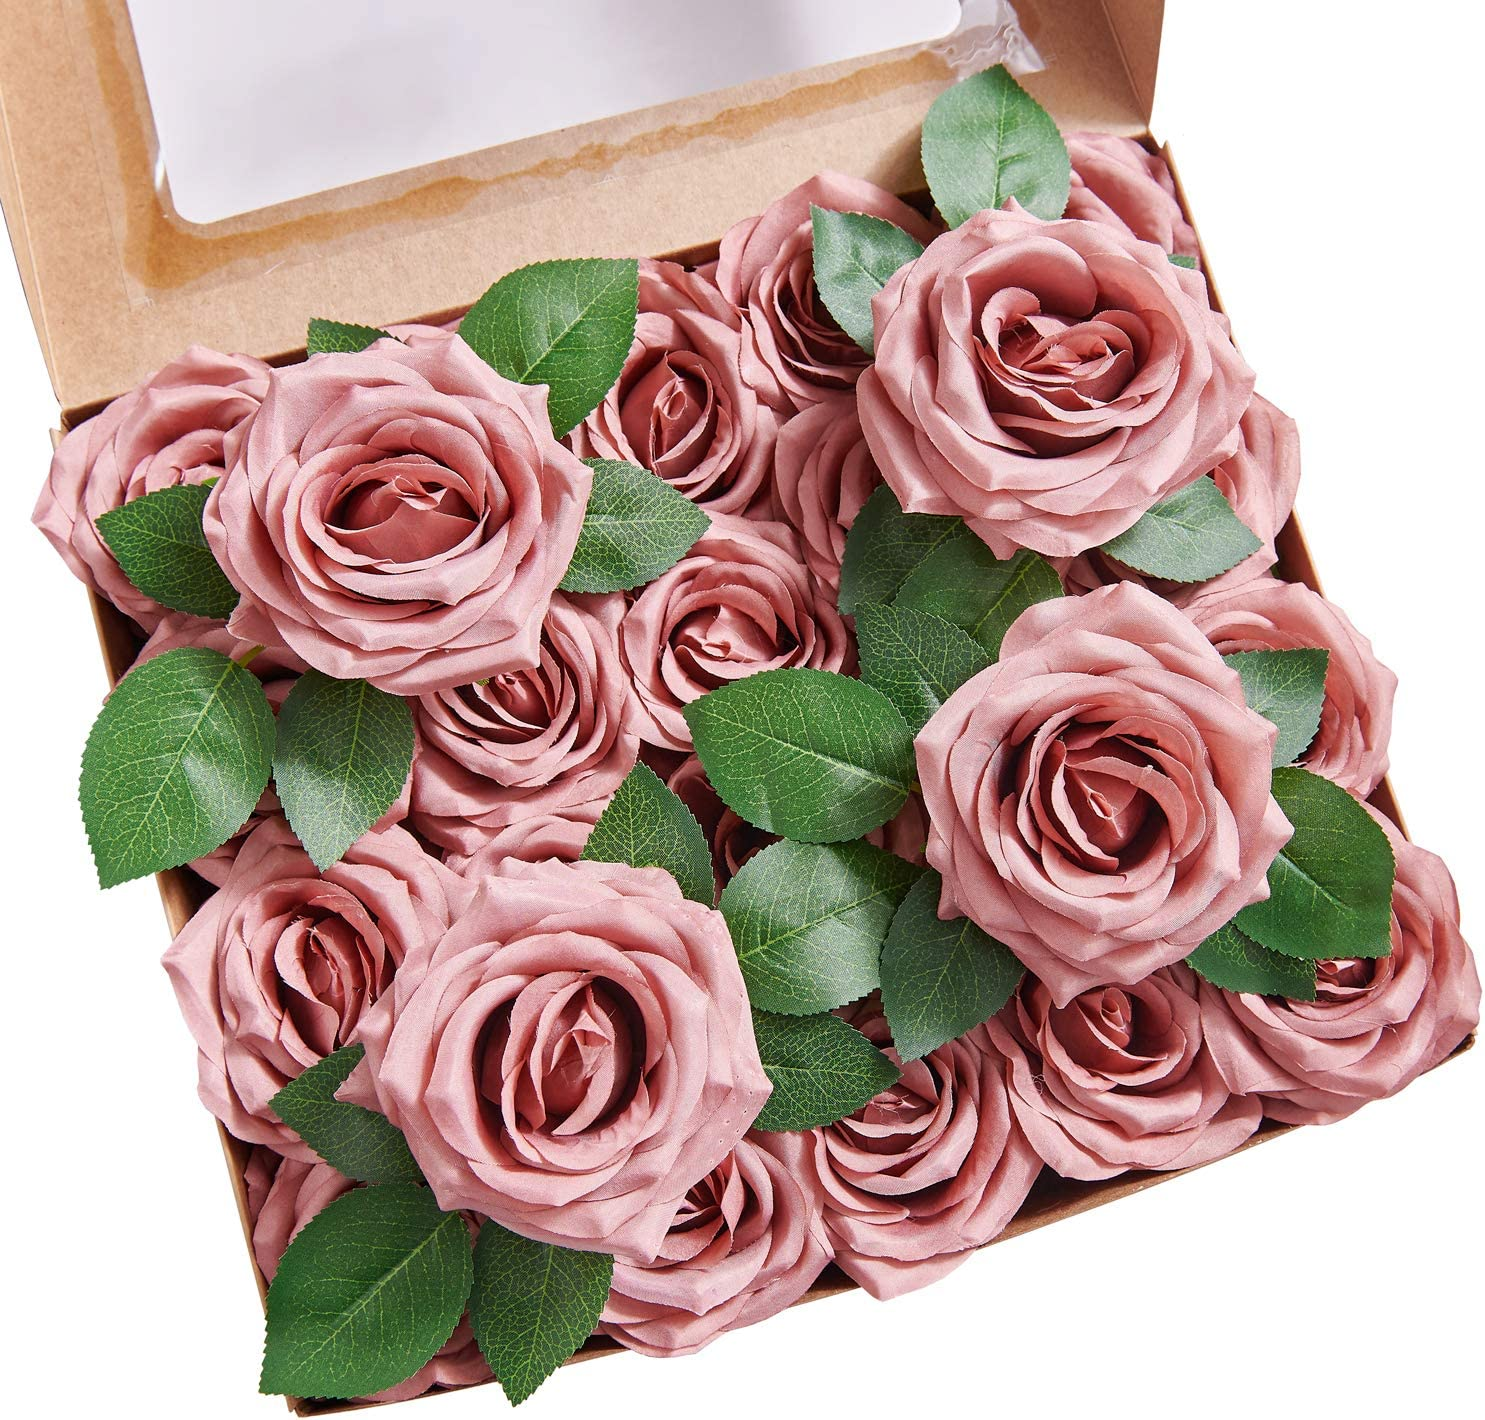 YUZZ Fake Roses Dusty Rose Artificial Roses Flowers Silk Roses Heads with Stems 25pcs Realistic Silk Roses for Wedding Centerpieces Bridal Show Bouquets Party Home DIY Flowers Decoration